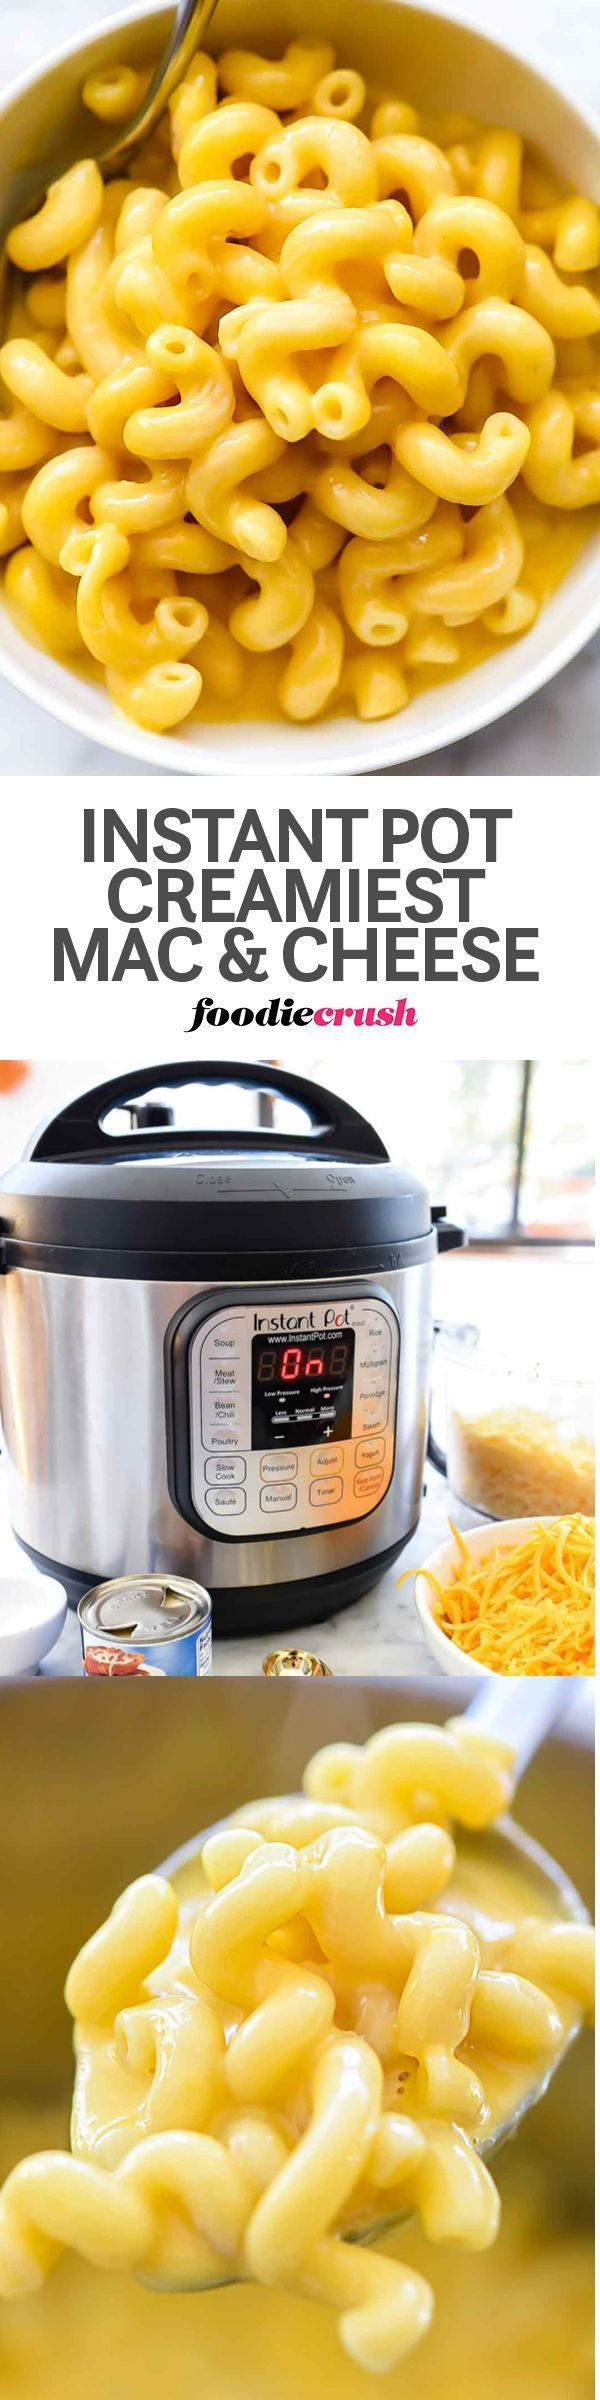 In just 5 minutes cooking time (thank you Instant Pot!), this lush and creamy macaroni and cheese recipe is made with 100% real cheese and couldn�t be easier or faster to make in the pressure cooker. Plus, I�m sharing 5 more recipe ideas for jazzing up th